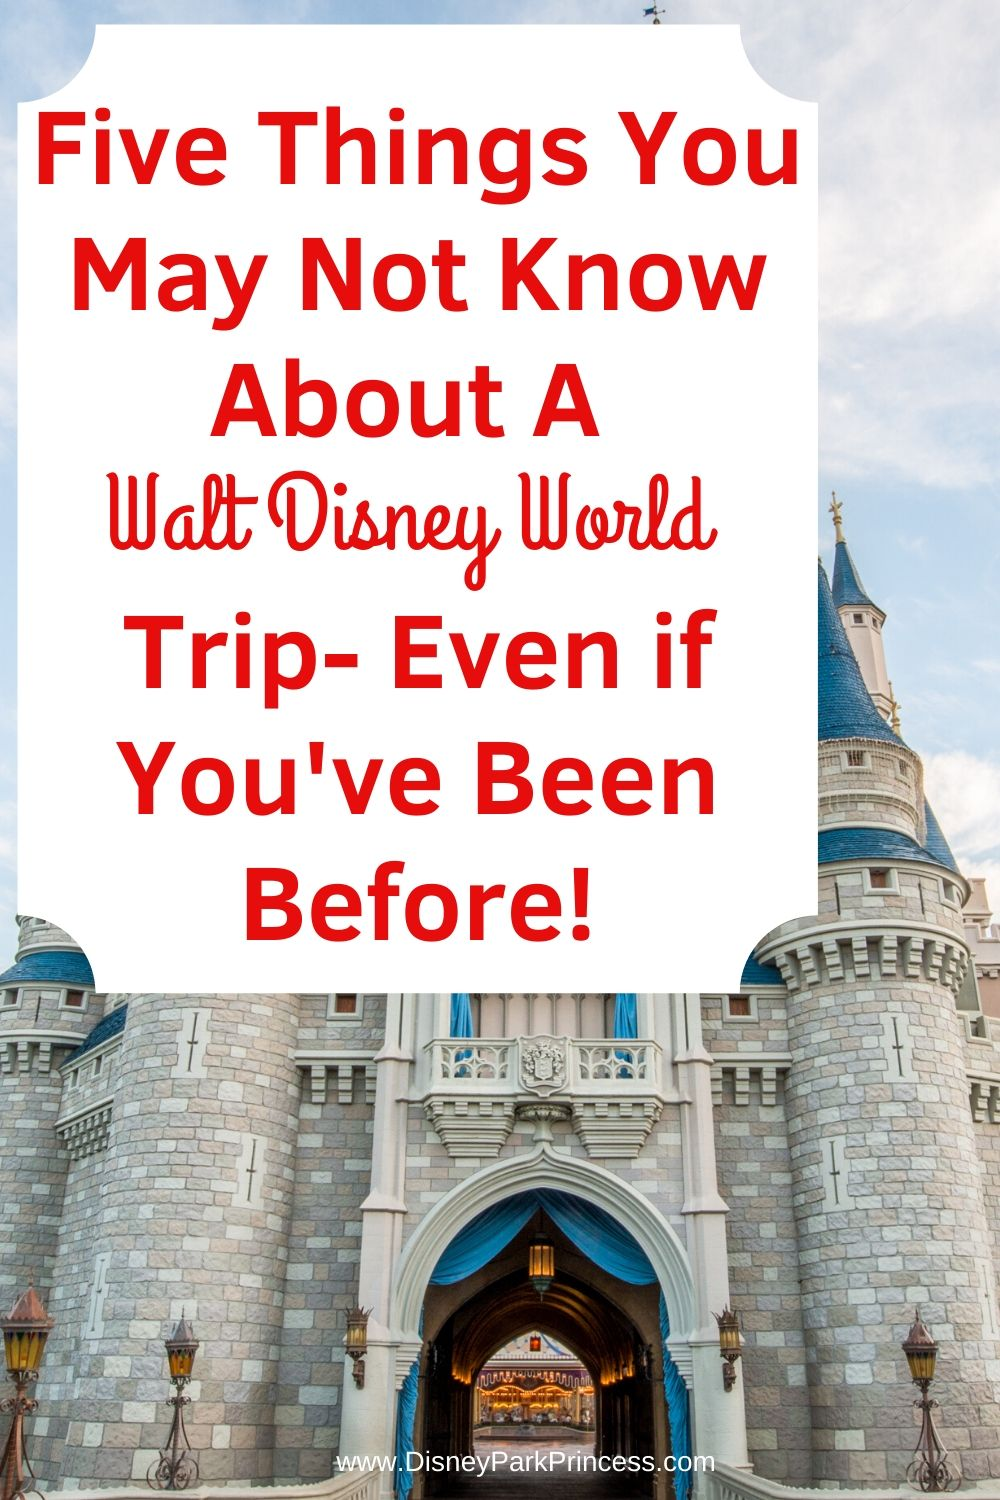 Five Things You May Not Know About A Walt Disney World Trip- Even if You've Been Before #disney #waltdisneyworld #disneytravel #vacation